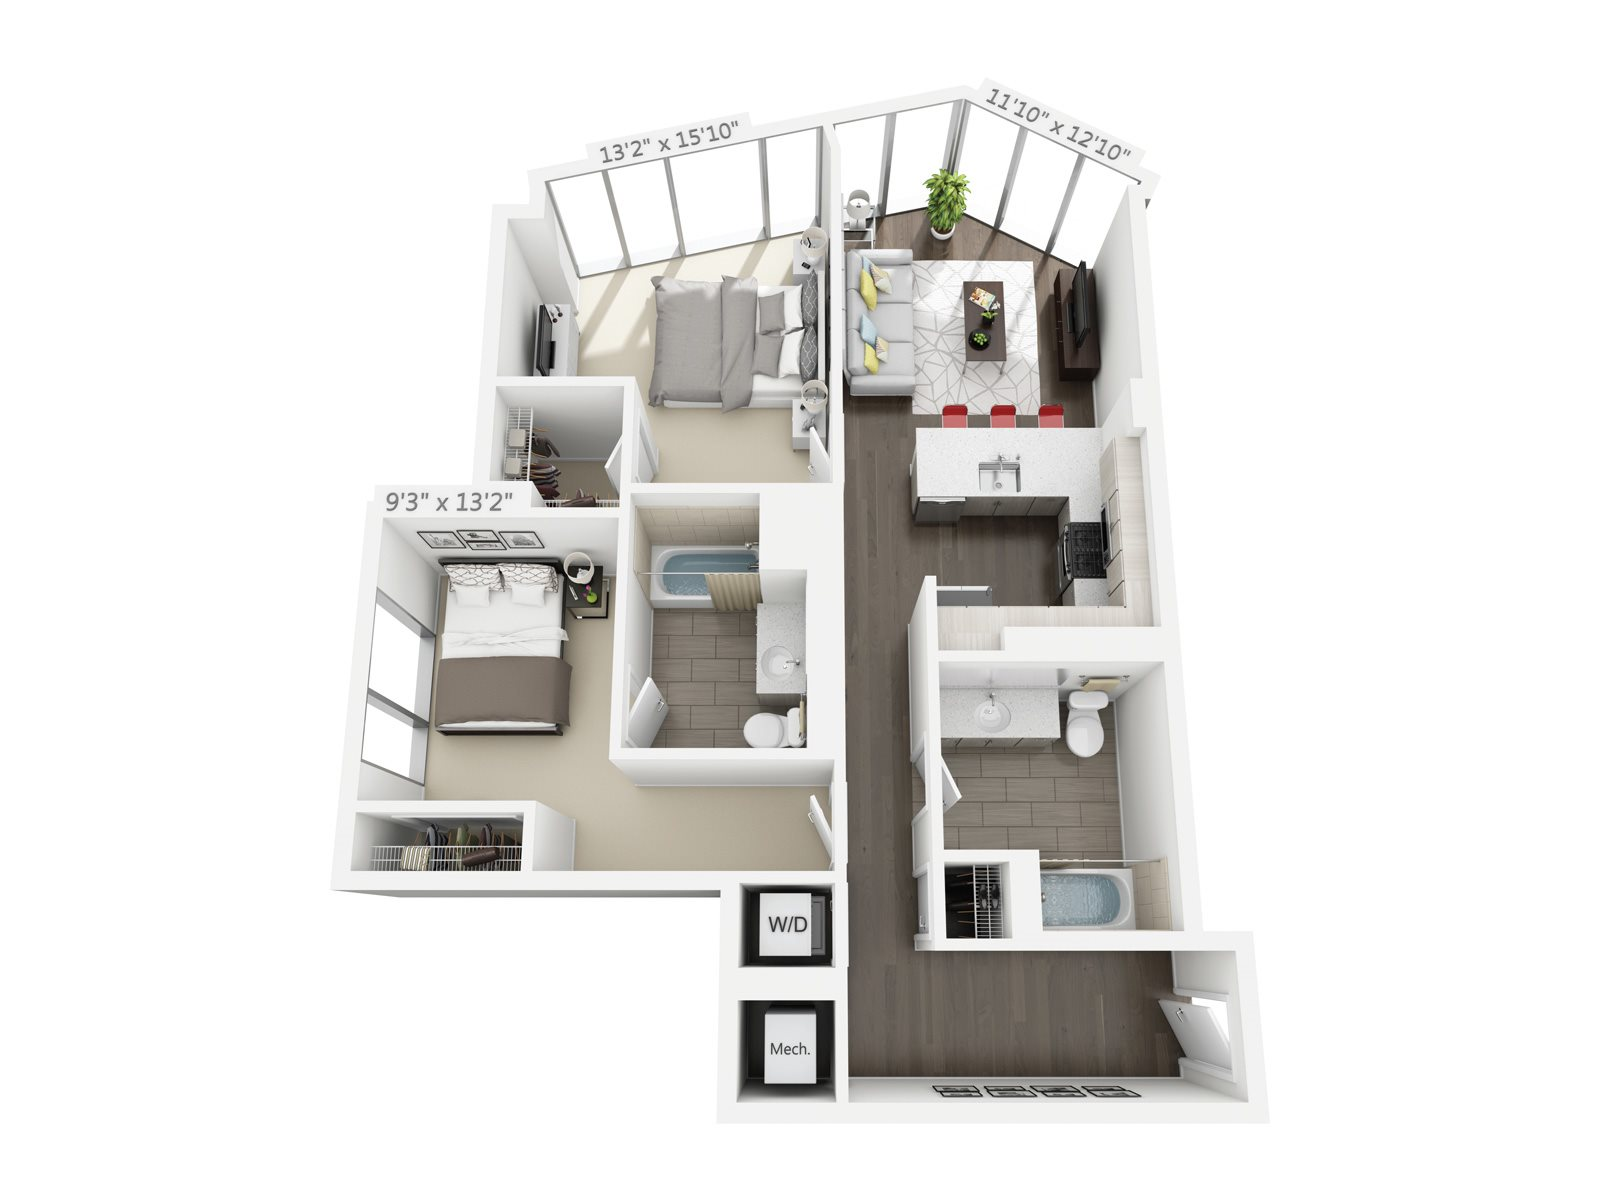 2 BEDROOM/2 BATH C3 Floor Plan 9